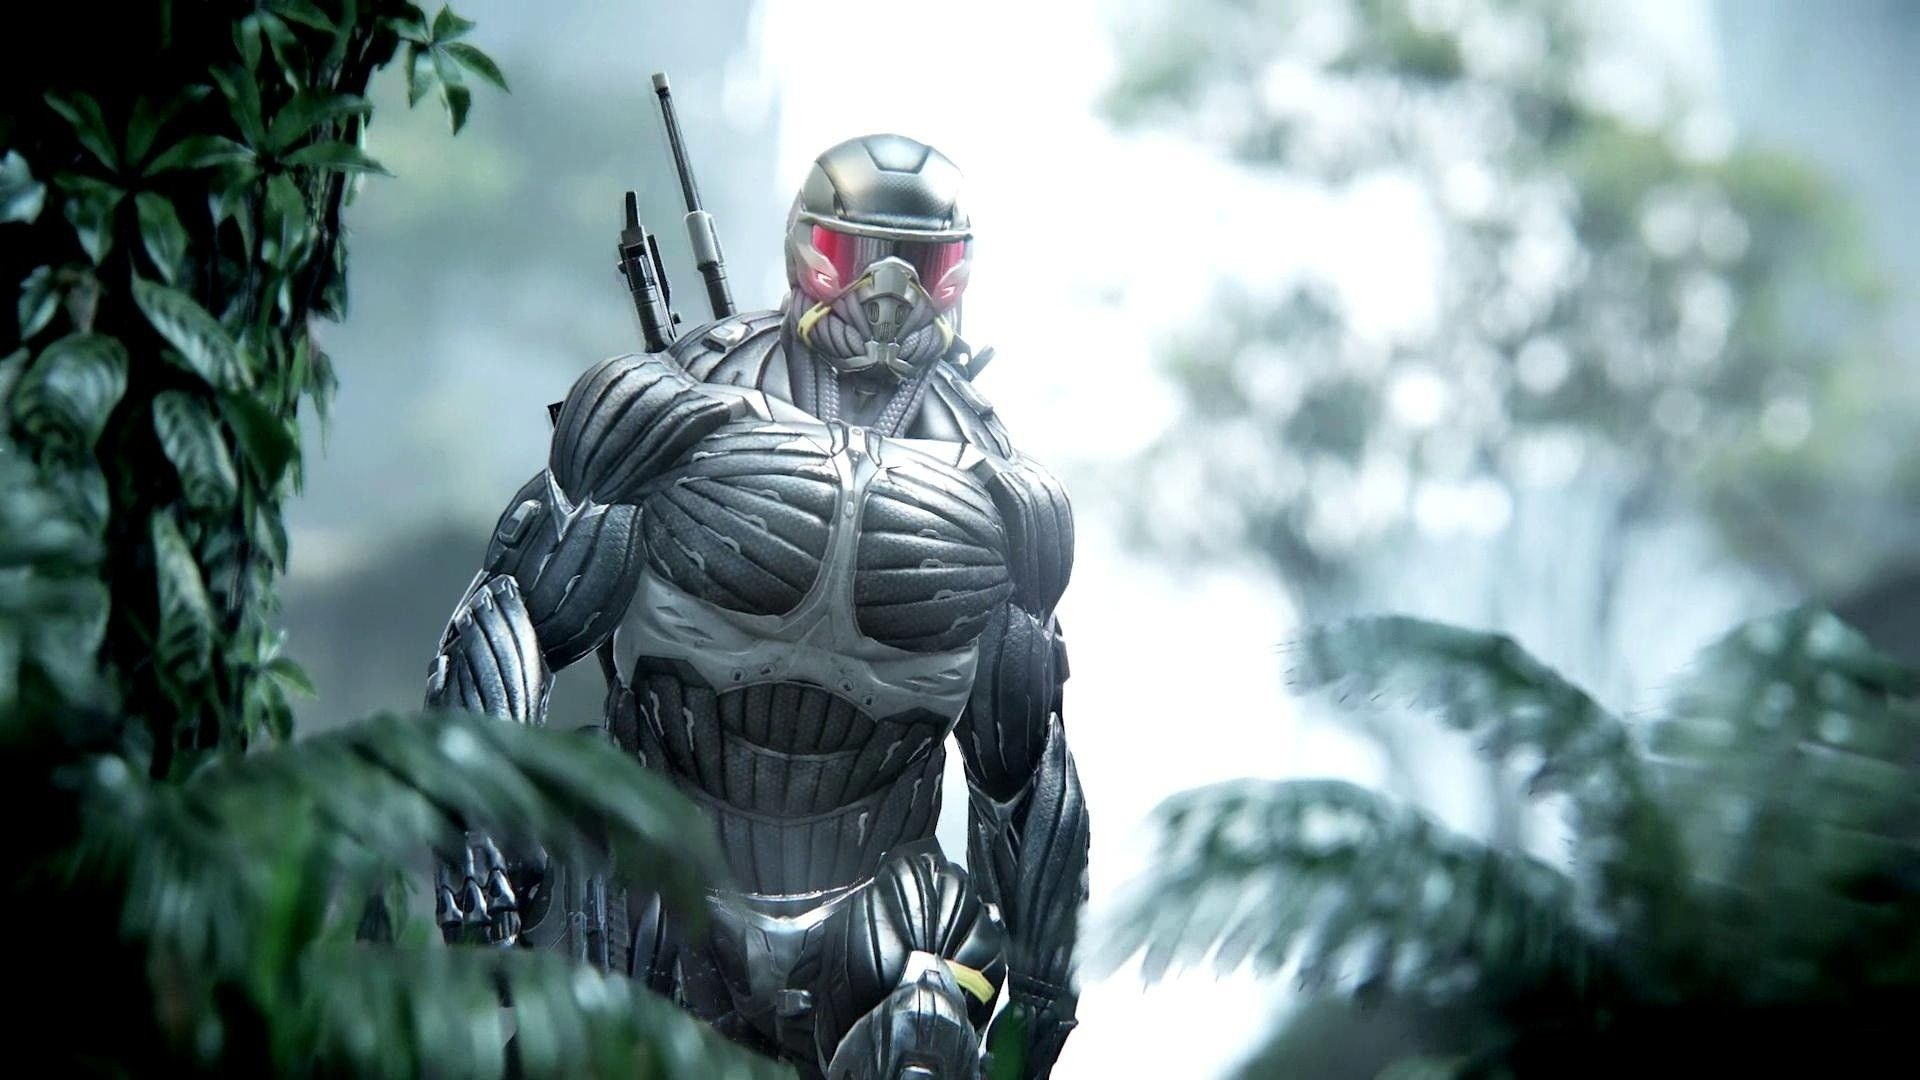 130 Crysis 3 Hd Wallpapers Backgrounds Wallpaper Abyss Fun Comics Wallpaper Backgrounds Crysis Series